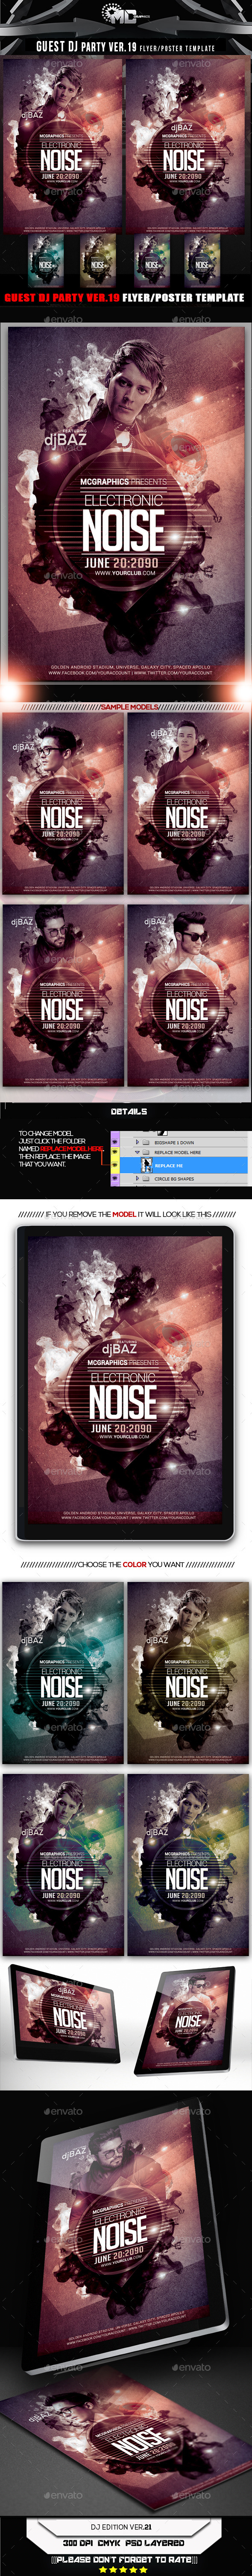 GraphicRiver Guest DJ Party Ver 19.1 Flyer Template 10089879